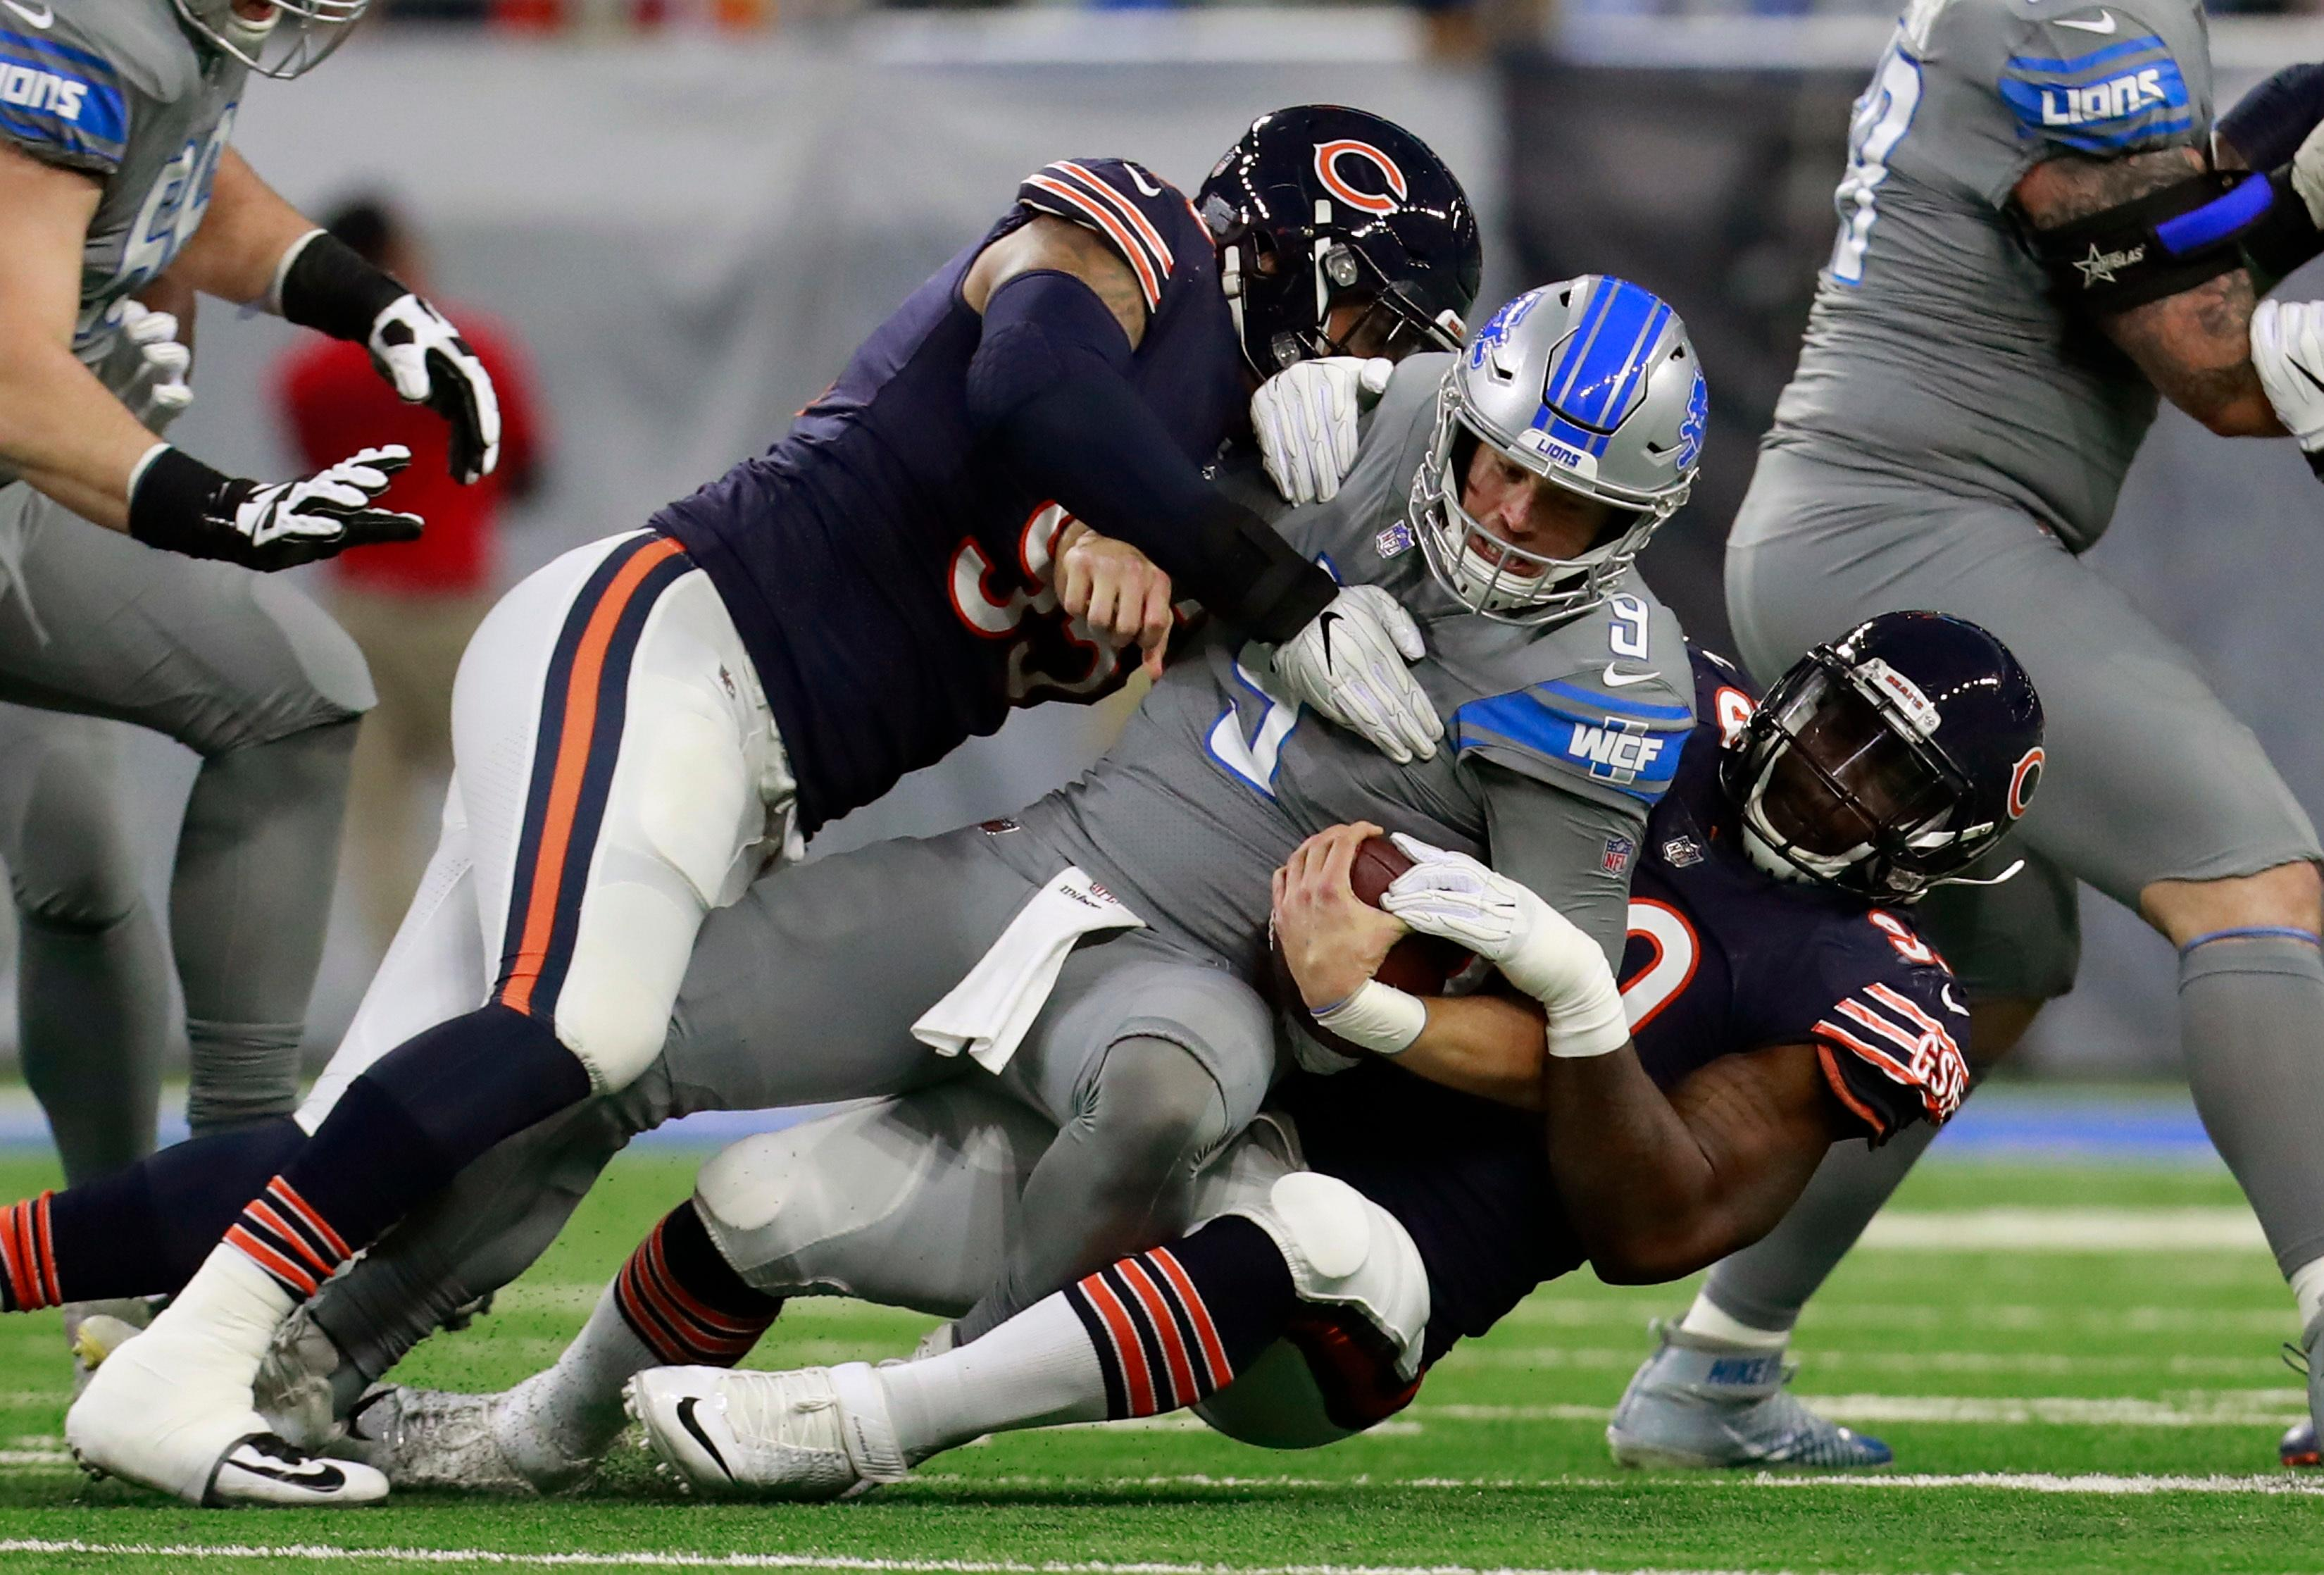 Detroit Lions quarterback Matthew Stafford (9) is sacked by Chicago Bears defensive end Roy Robertson-Harris, left, and linebacker Lamarr Houston during the first half of an NFL football game, Saturday, Dec. 16, 2017, in Detroit. (AP Photo/Rey Del Rio)